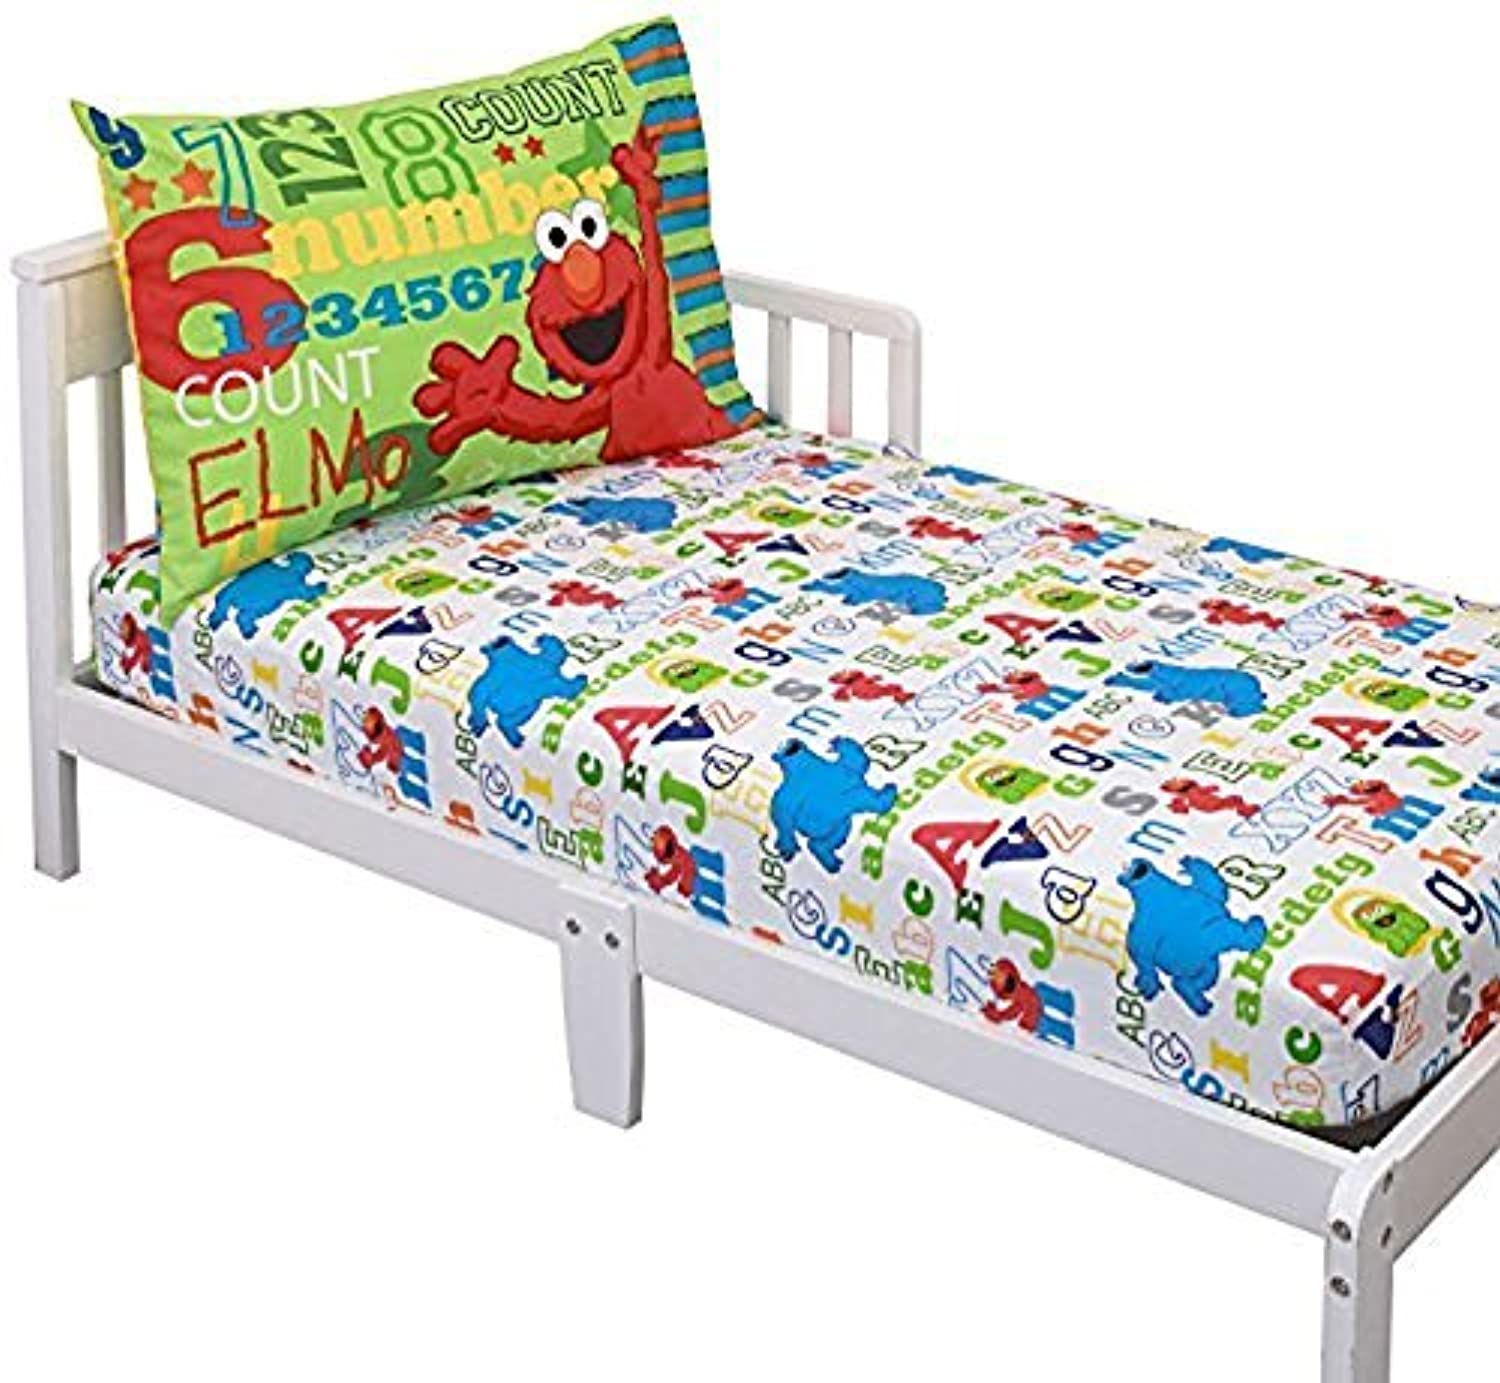 Sesame Street Elmo & Friends Toddler Sheet Set 【You&Me】 [並行輸入品]